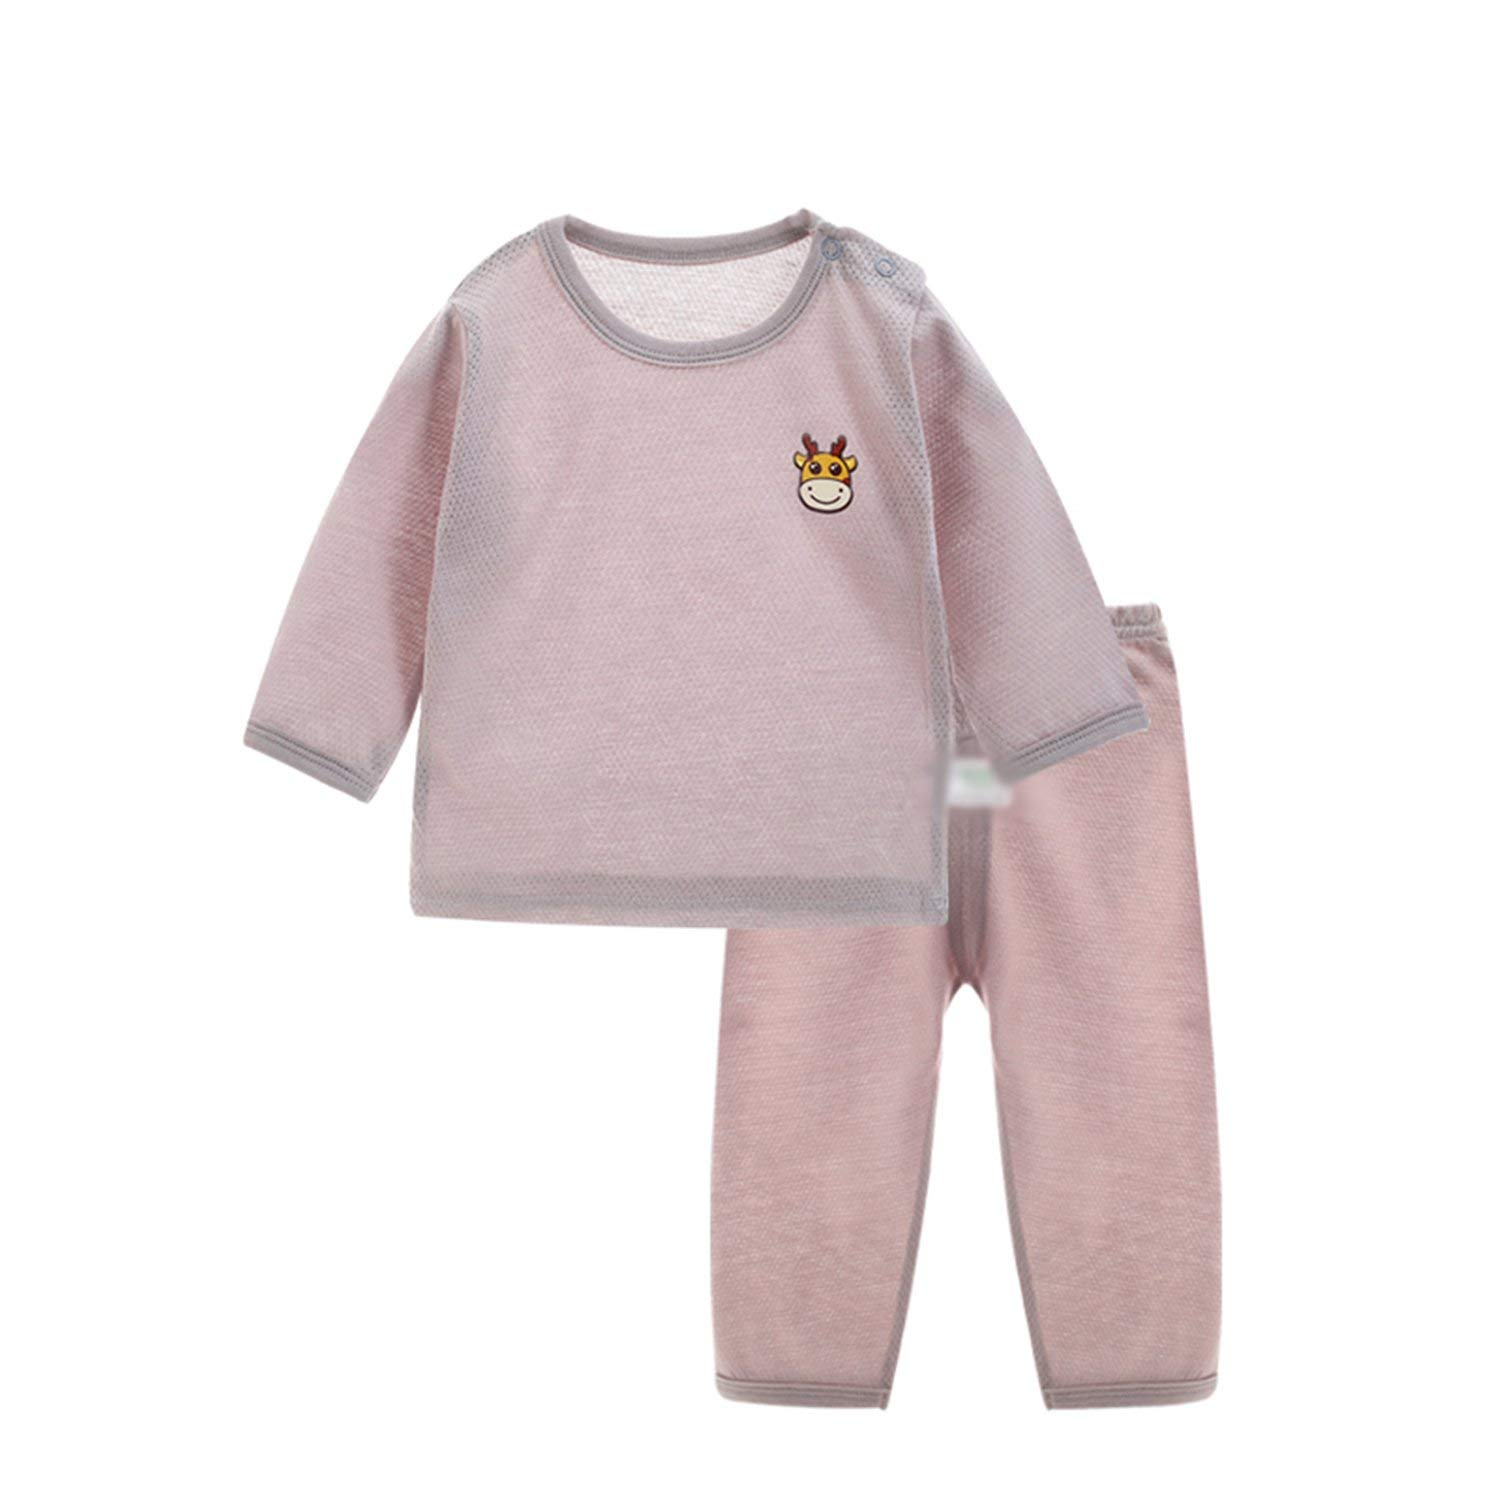 a62469eba Cheap Baby Clothing